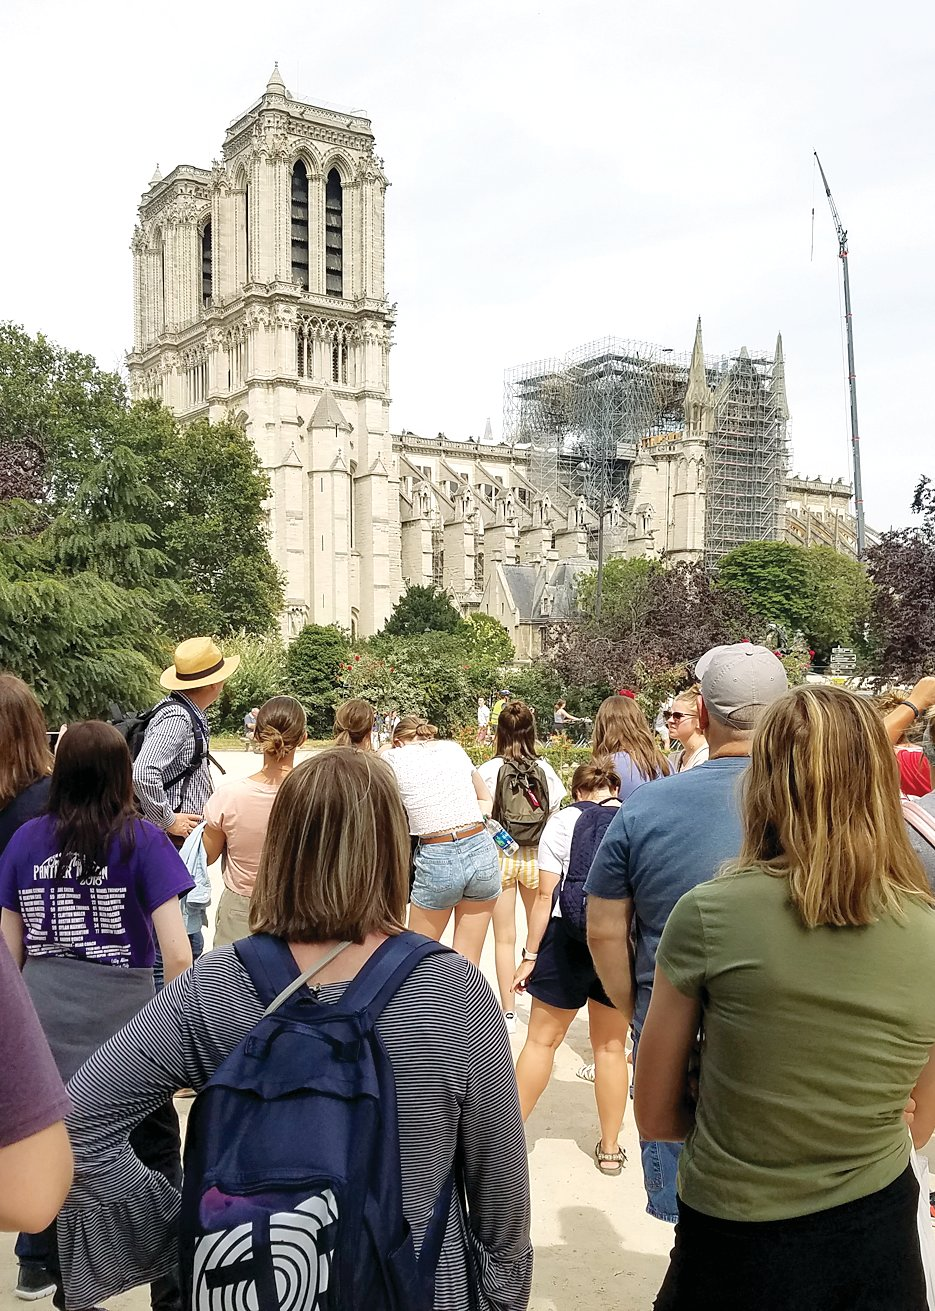 While they weren't able to go inside due to the fire at Notre Dame in April, the Litchfield travelers were able to catch a glimpse of the majestic cathedral during their time in Paris.